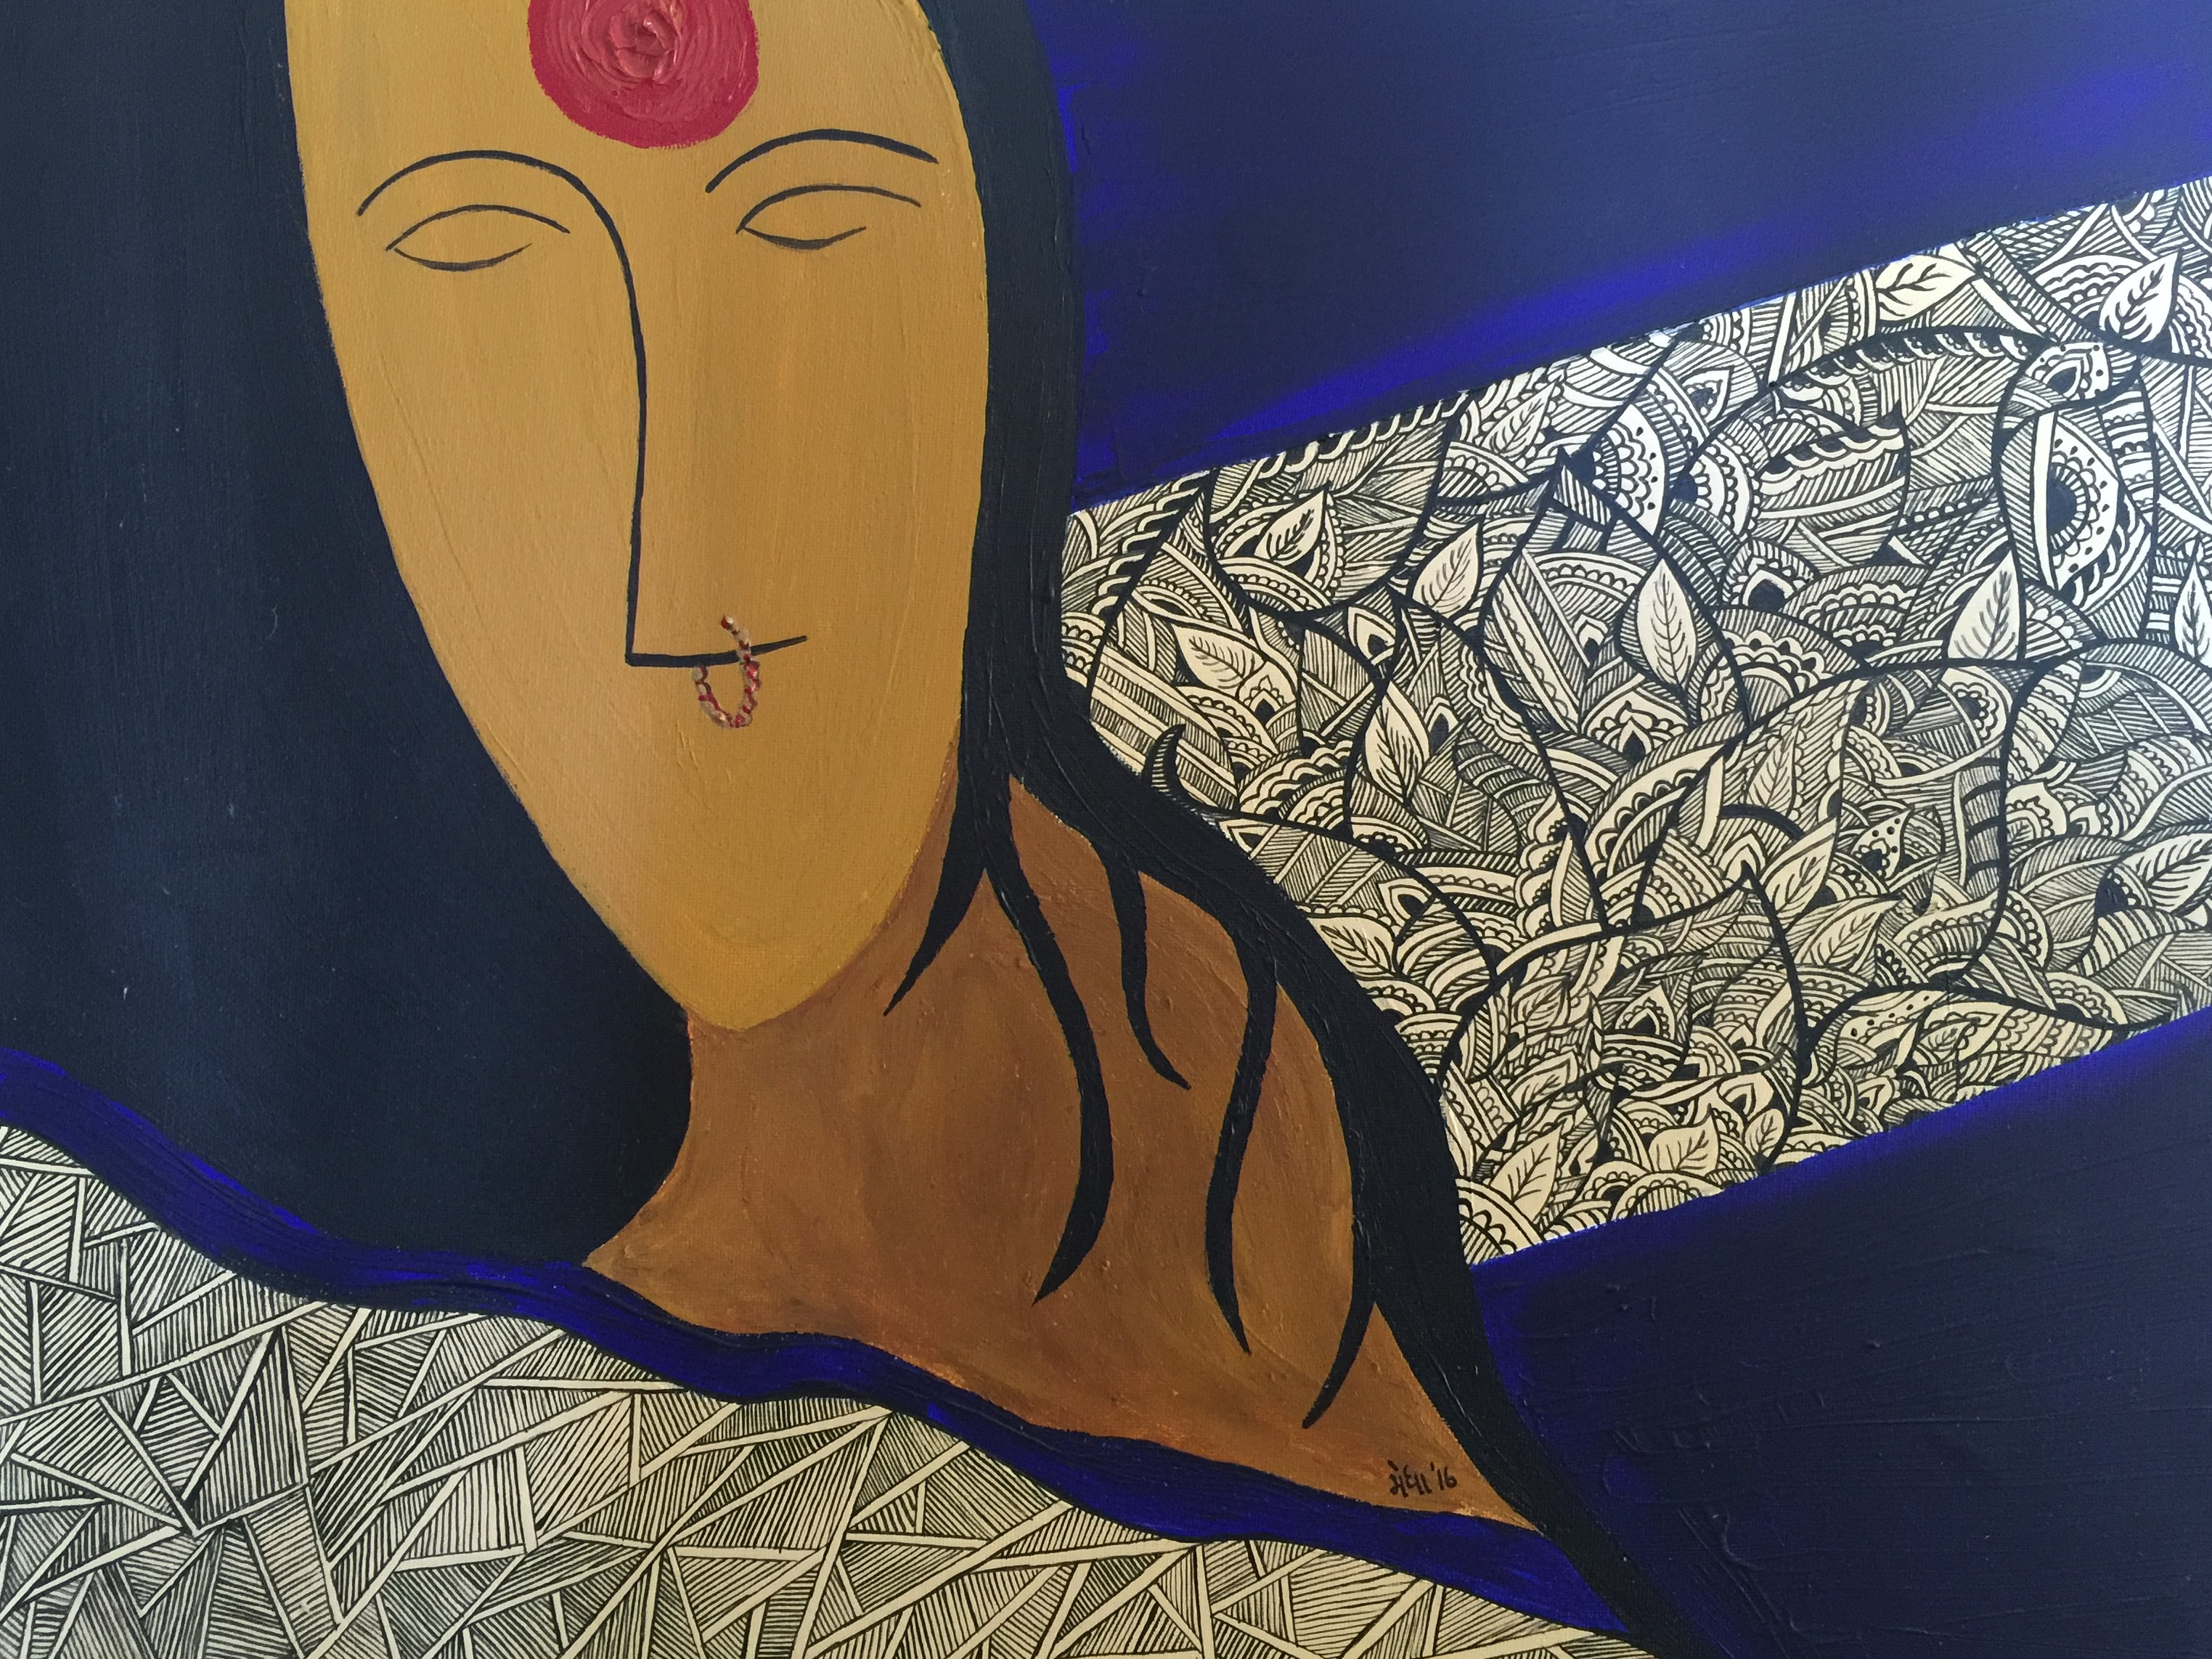 Mystery of the Indian Woman artwork by Medha Paleja - art listed for sale on Artplode